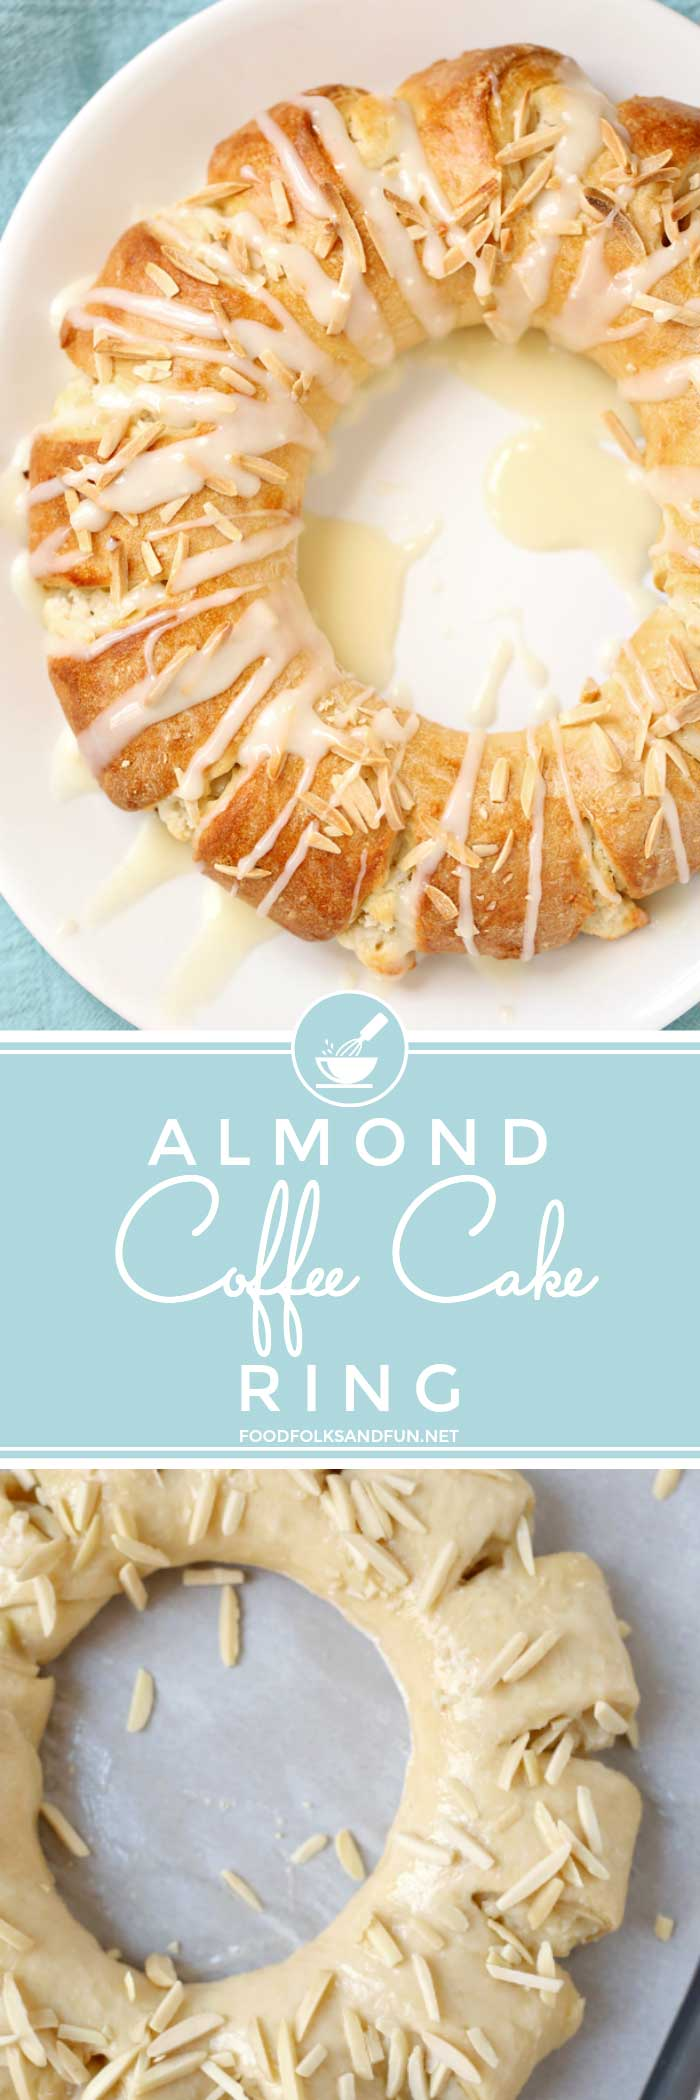 This Almond Coffee Cake Ring or tea ring is a slightly sweet yeast bread filled with almond paste and cream cheese and made into a wreath-shaped pastry. It's baked until golden and then drizzled with icing. This recipe feeds a crowd and is perfect for brunch, and Christmas and Easter mornings. via @foodfolksandfun